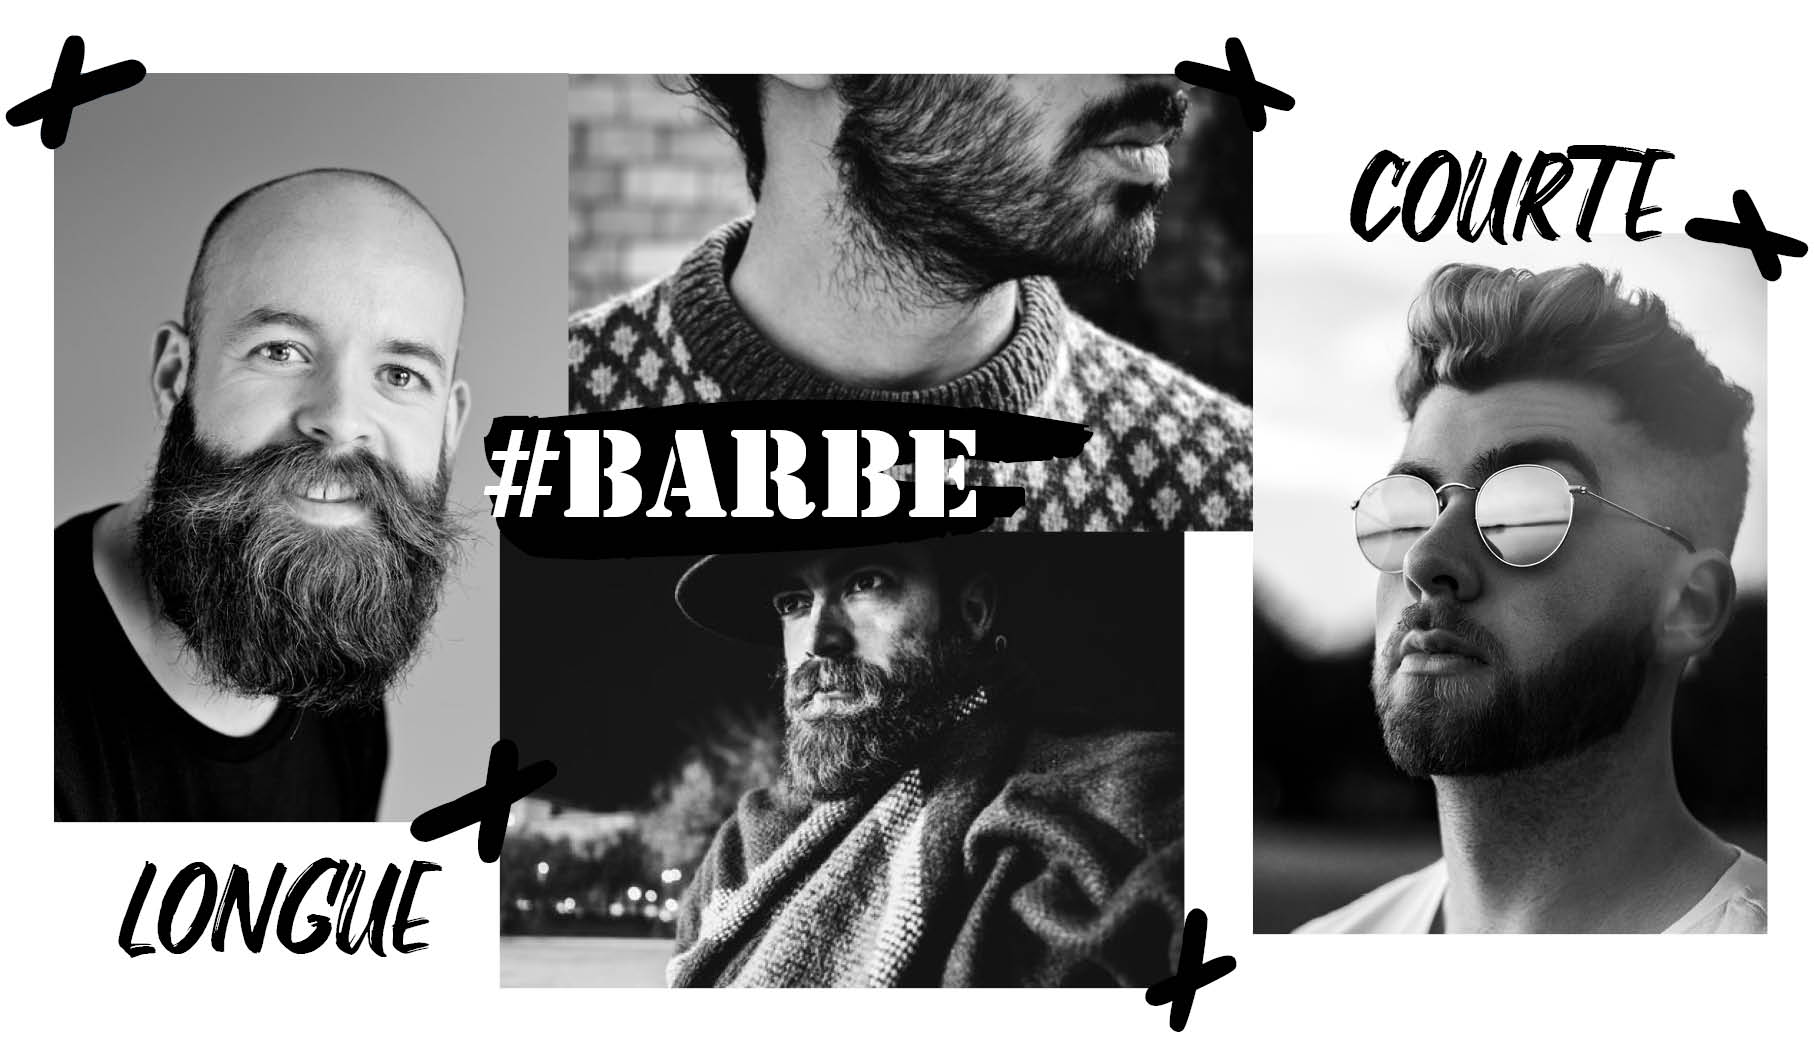 comment entretenir barbe